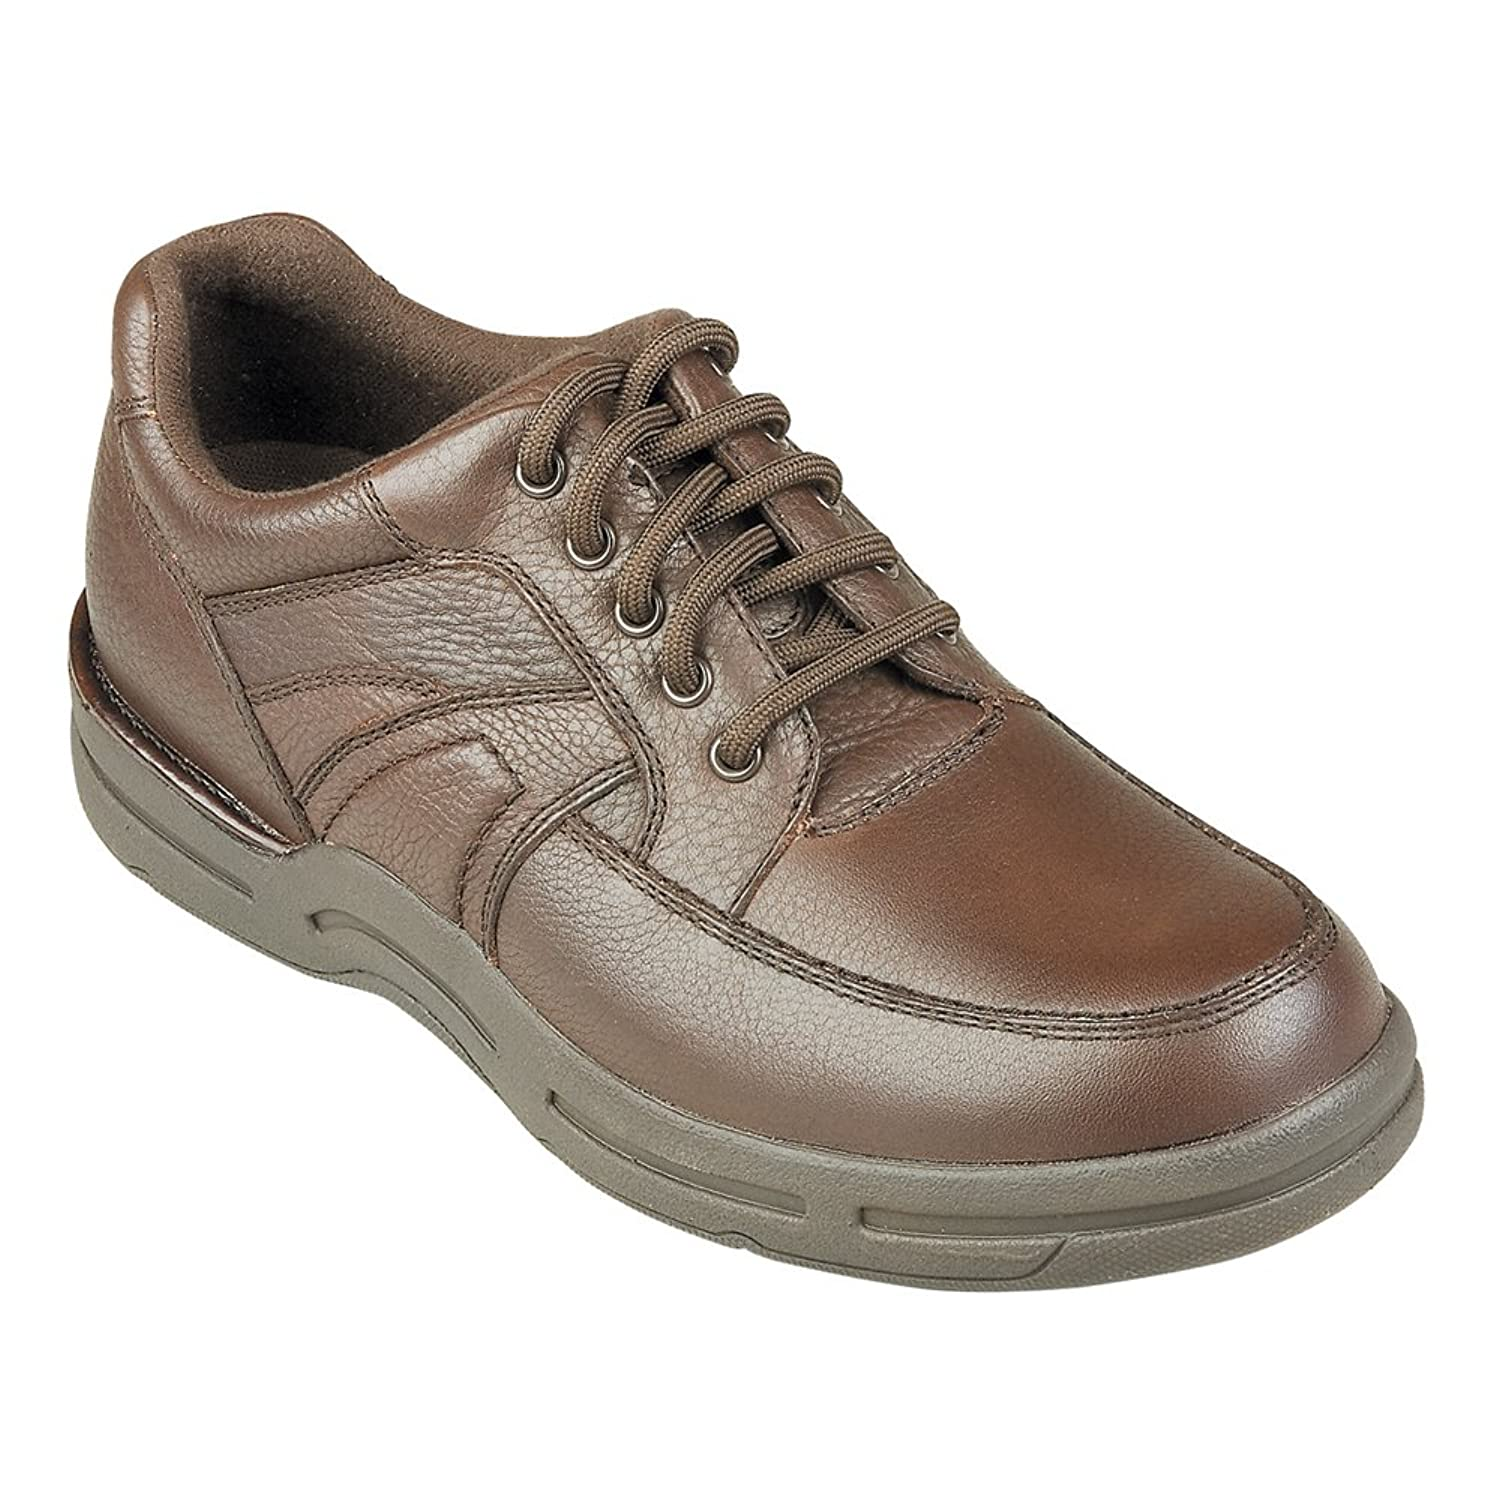 InStride Dakota Men's Comfort Therapeutic Extra Depth Casual Shoe leather lace-up